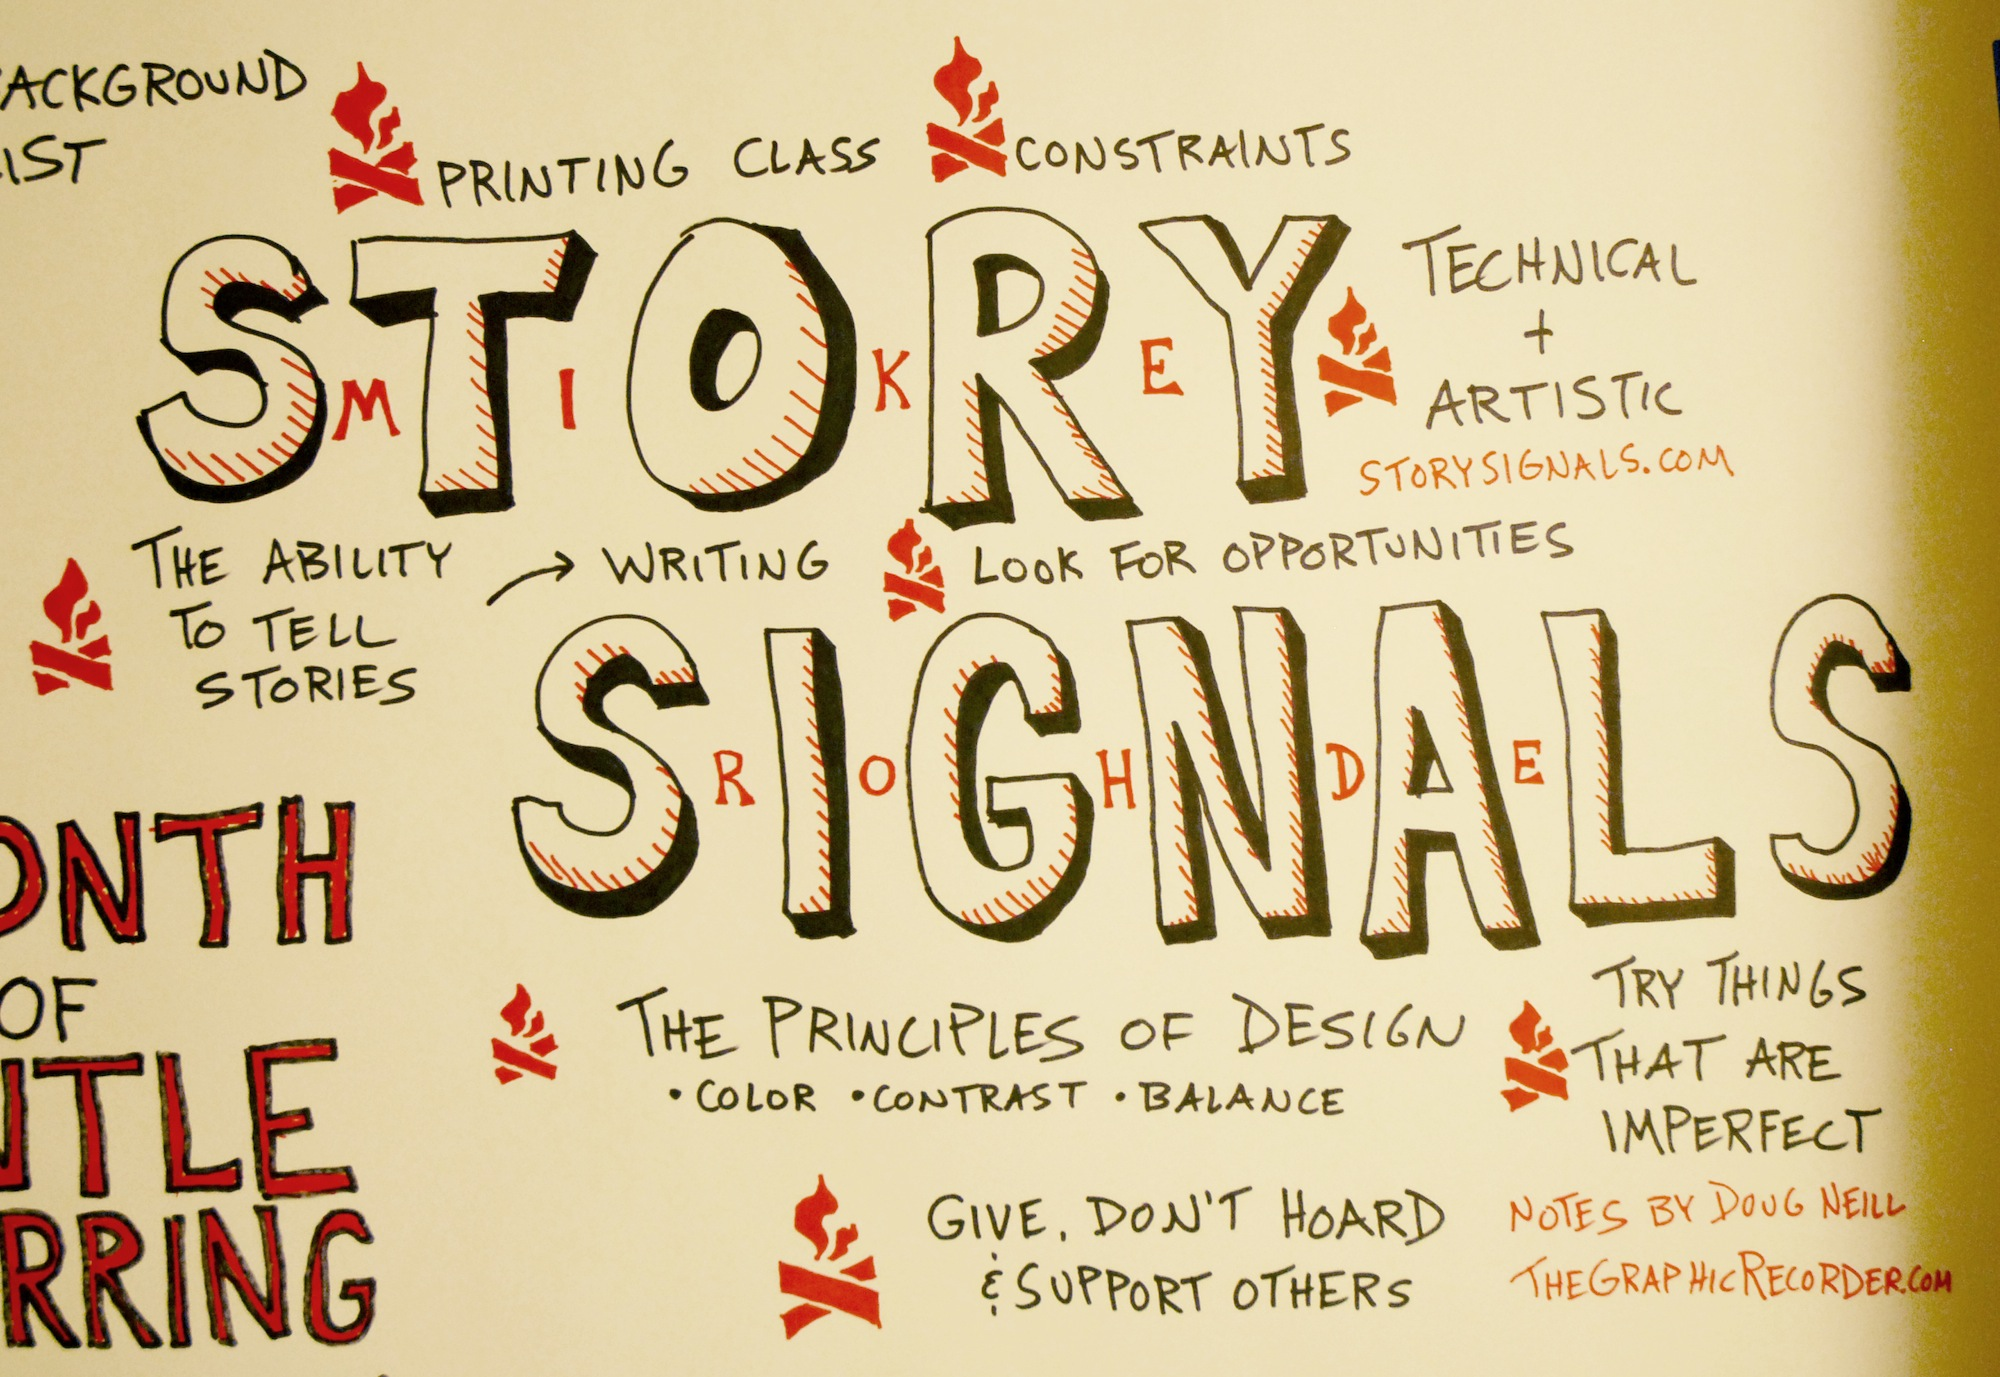 Easing Back Into Large-Scale Graphic Recording | The Graphic Recorder